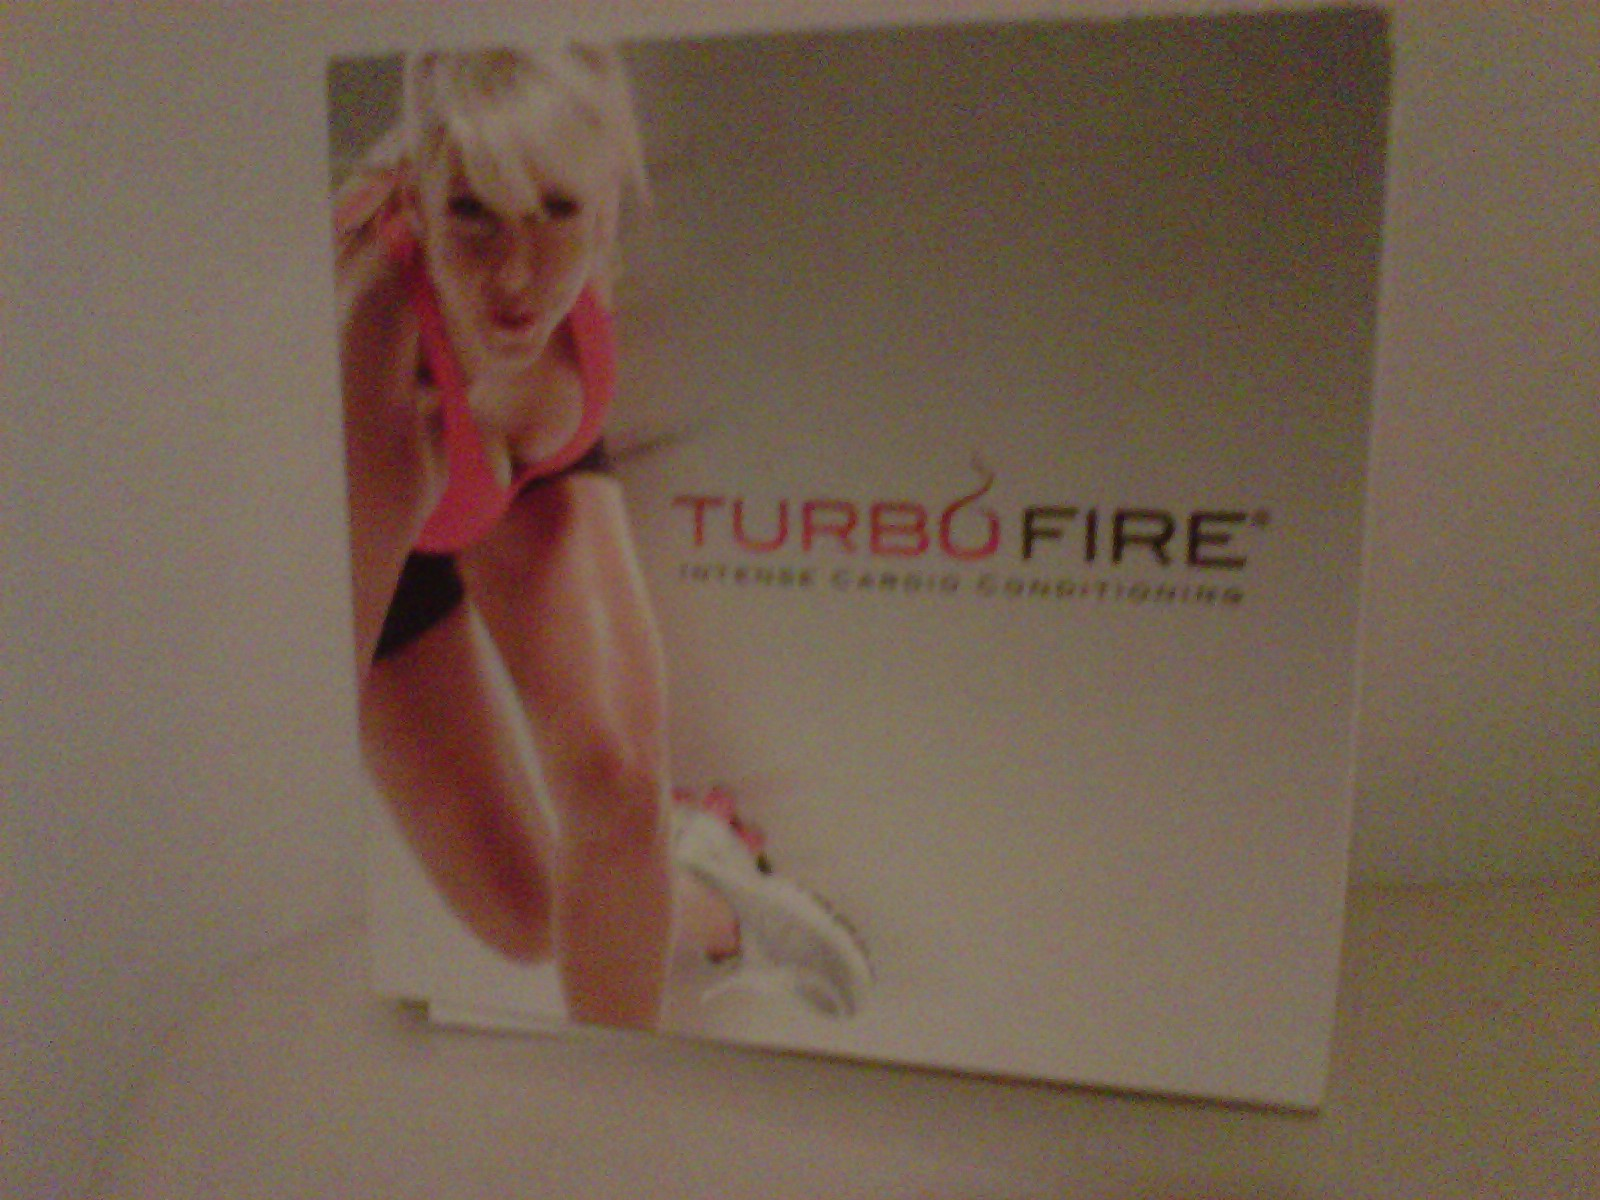 turbo fire workout schedule